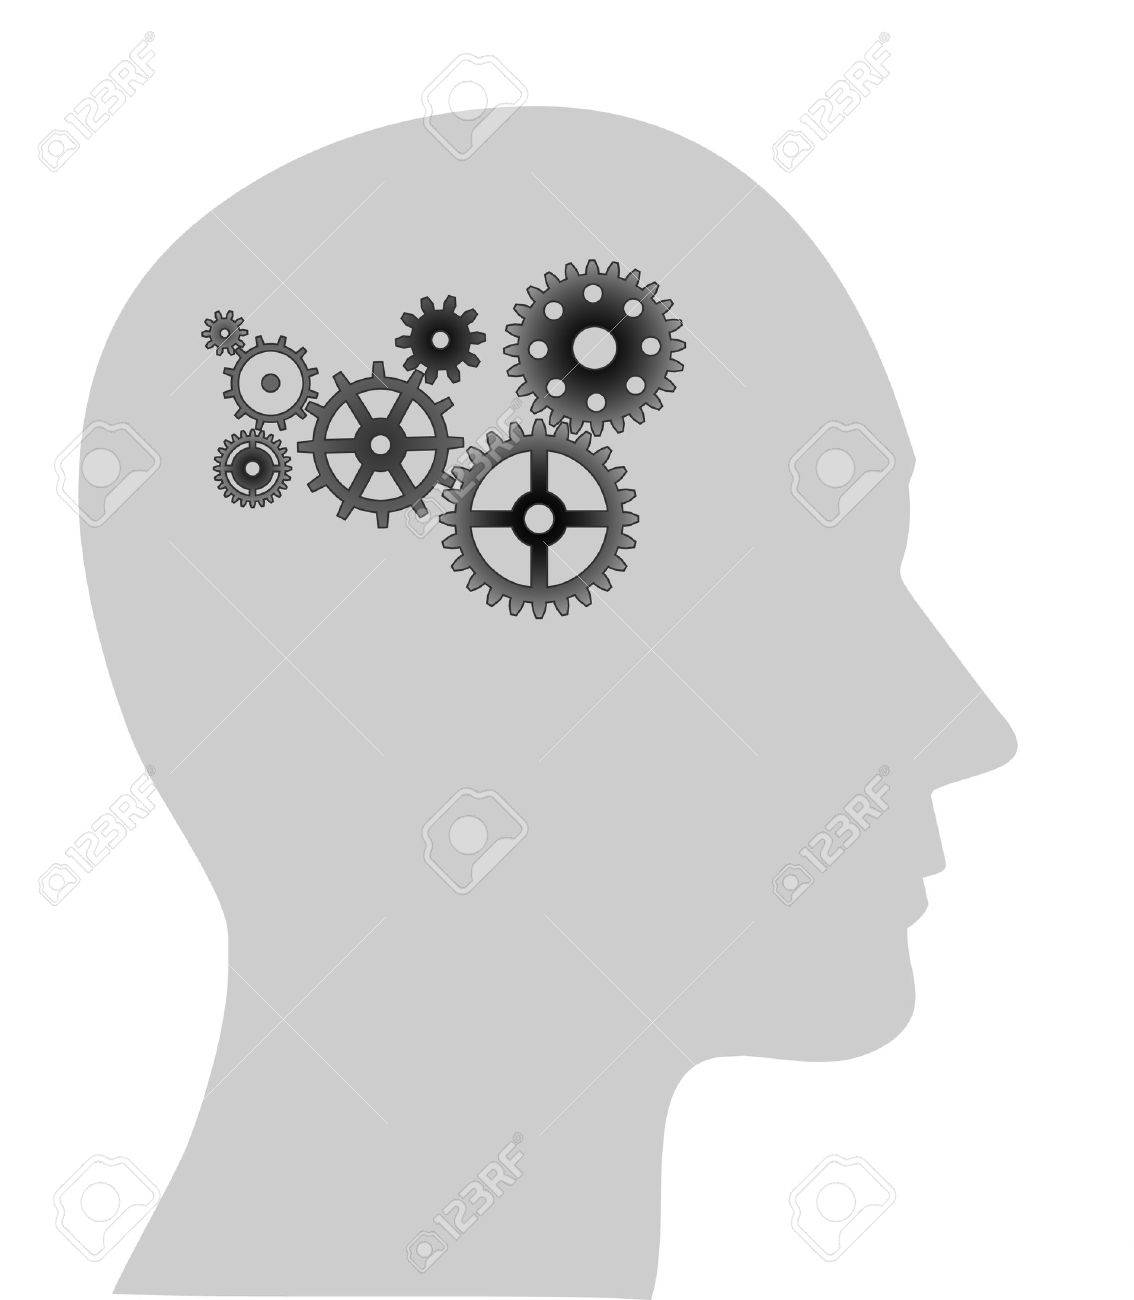 Illustration of cogs or gears in human head Stock Vector - 4671311